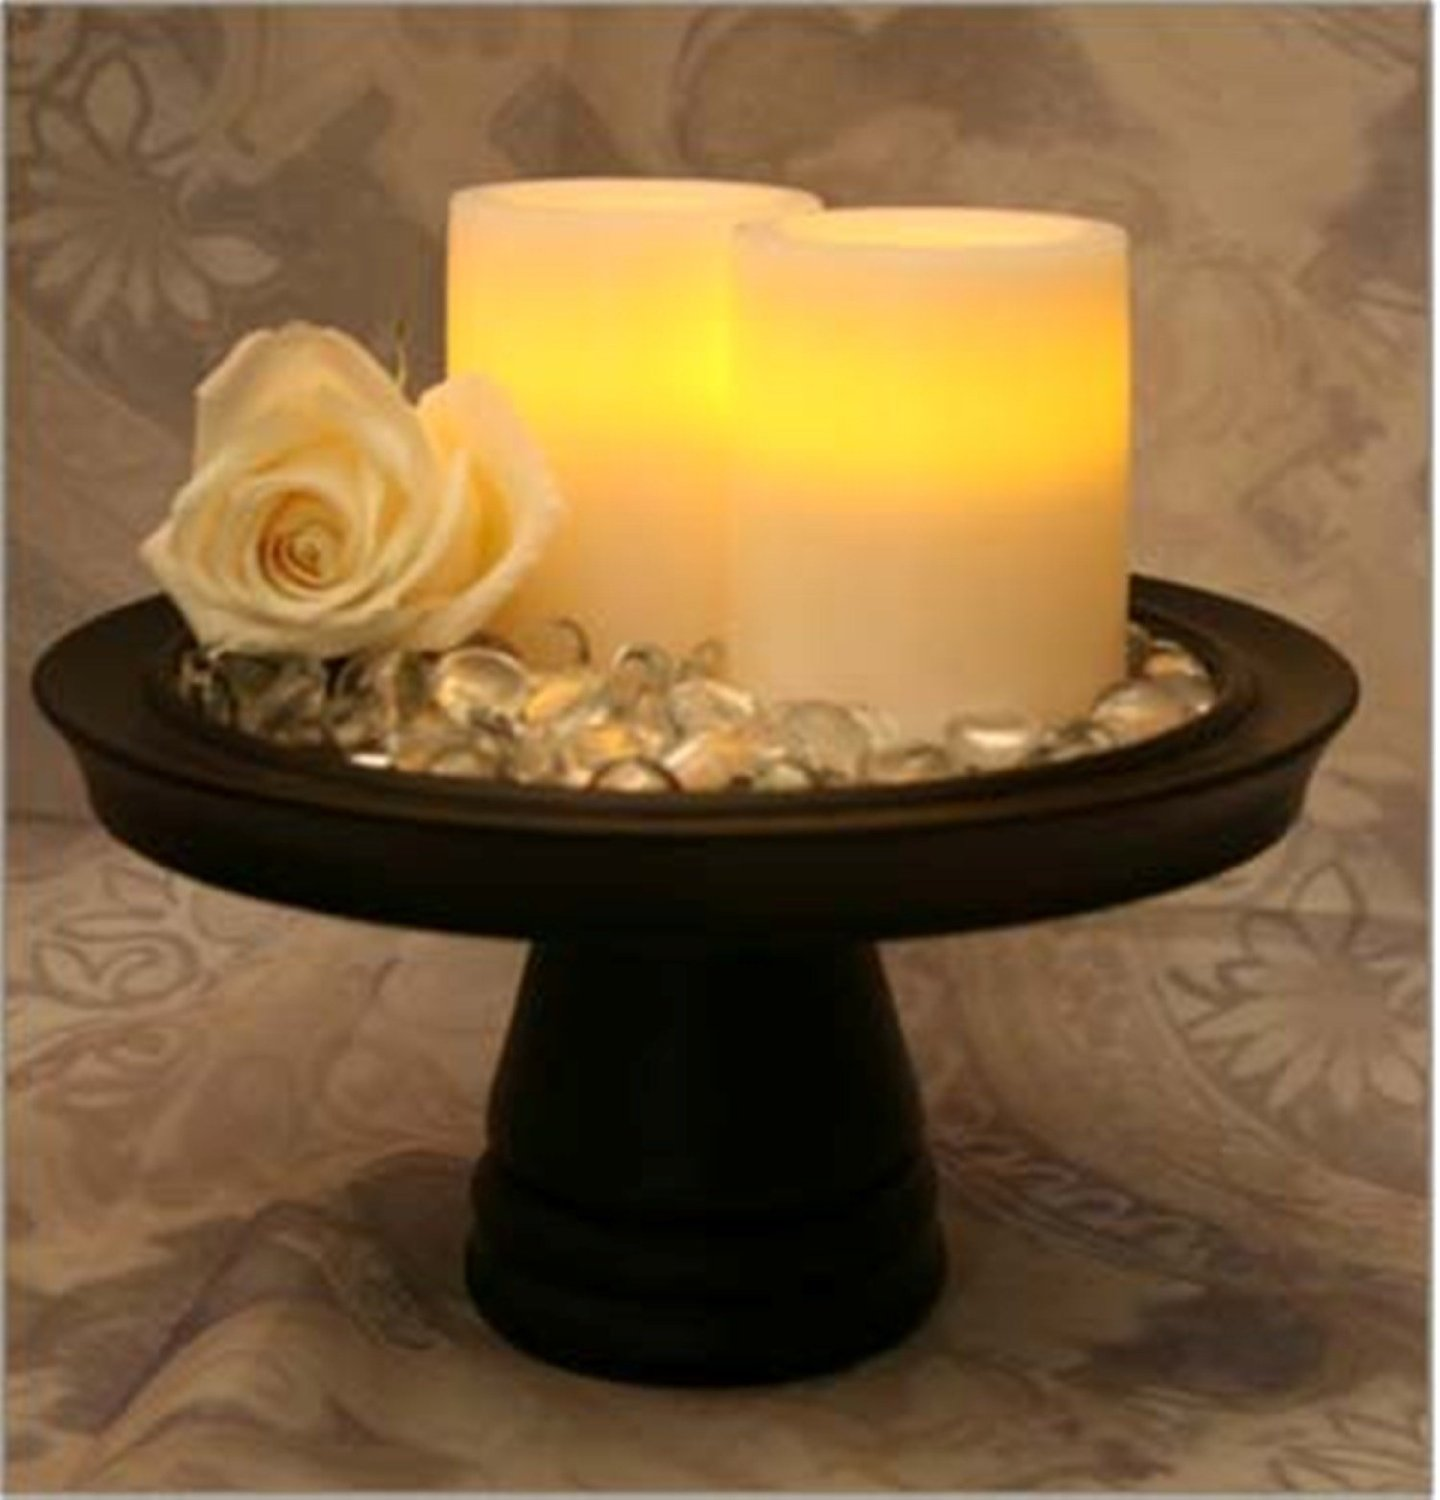 4 Inch Round Vanilla flameless candles with timer on black stand for home decoration ideas